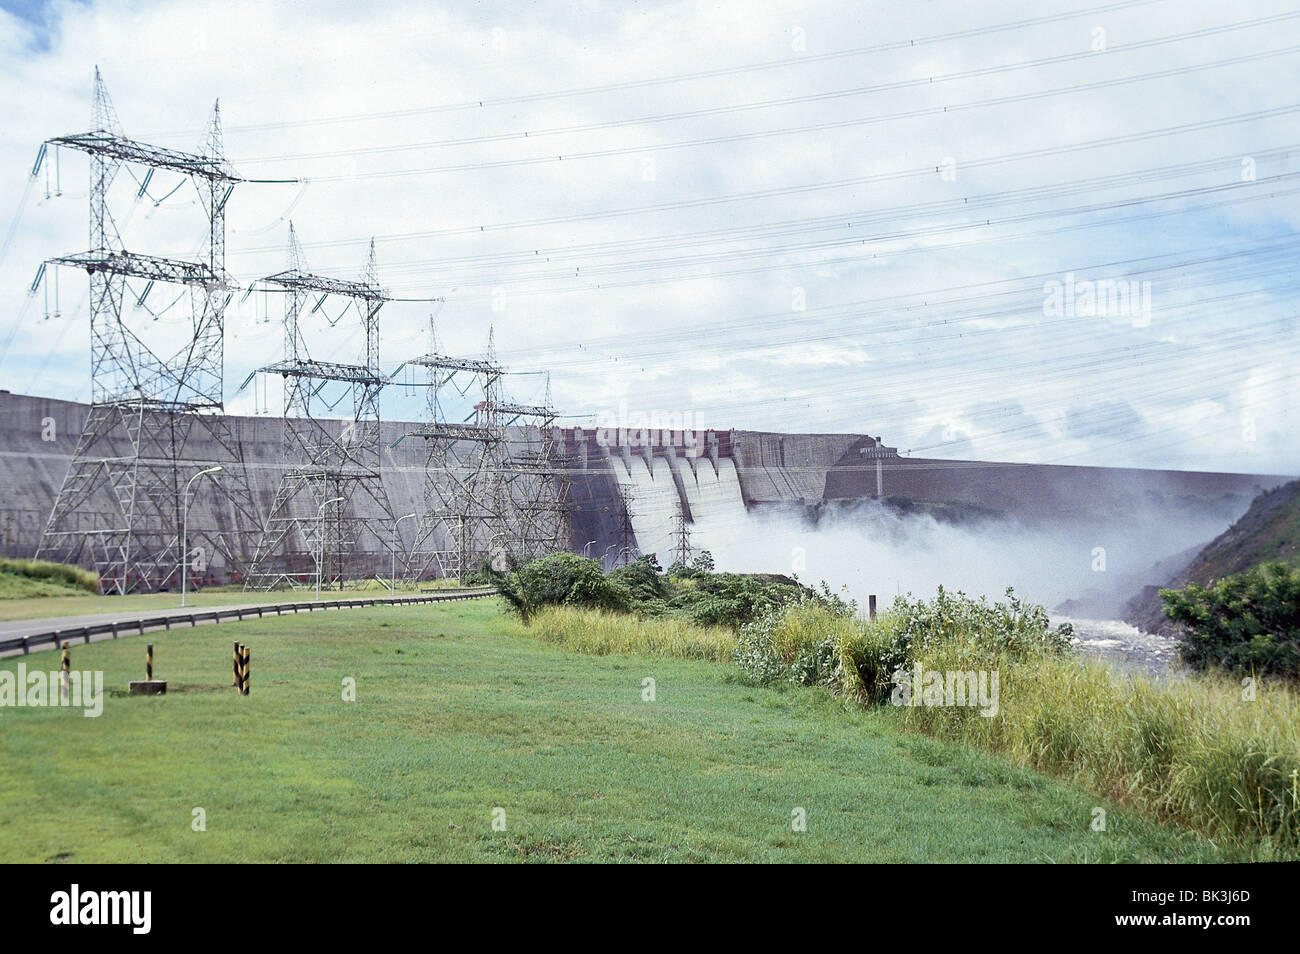 the guri dam in the state of bolivar venezuela stock photo alamy https www alamy com stock photo the guri dam in the state of bolivar venezuela 28968981 html